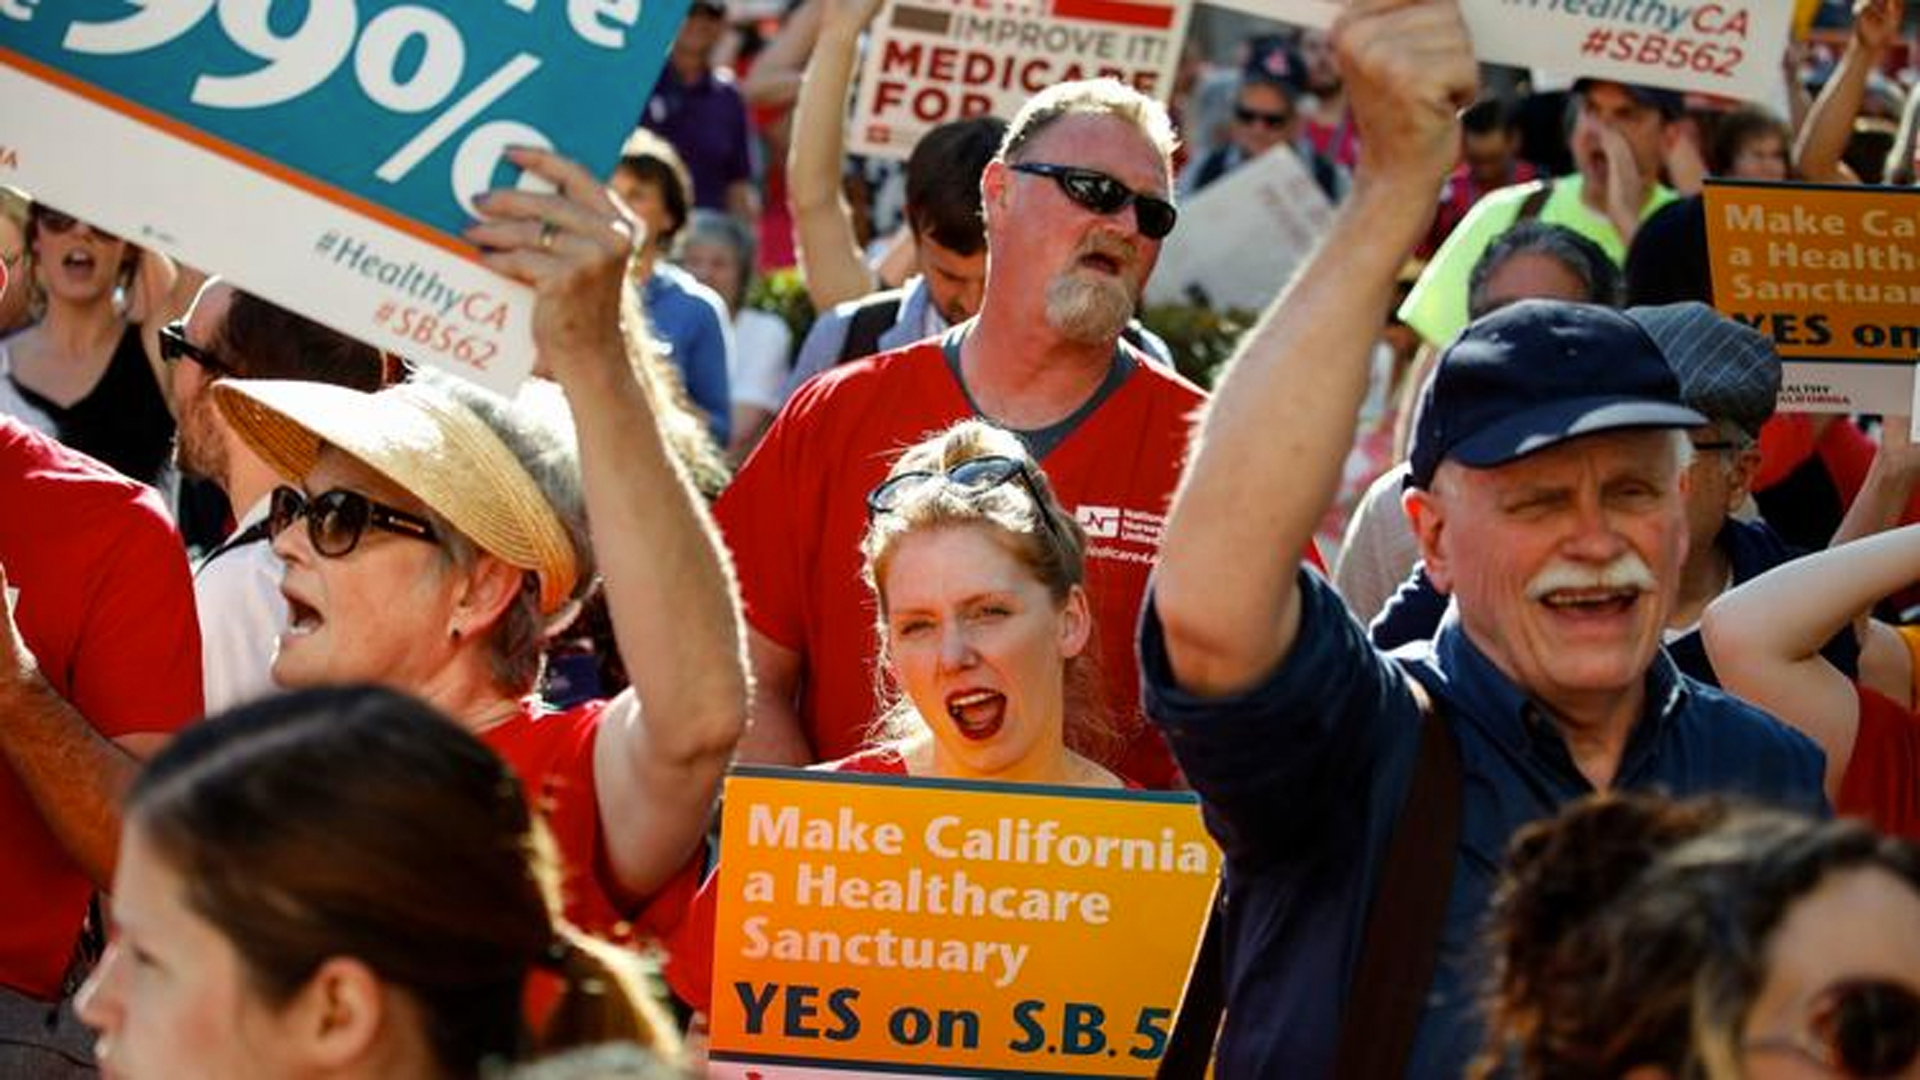 Several hundred people in Sacramento marched in support of a single-payer healthcare system on May 19, 2017. (Credit: Jay L. Clendenin / Los Angeles Times)